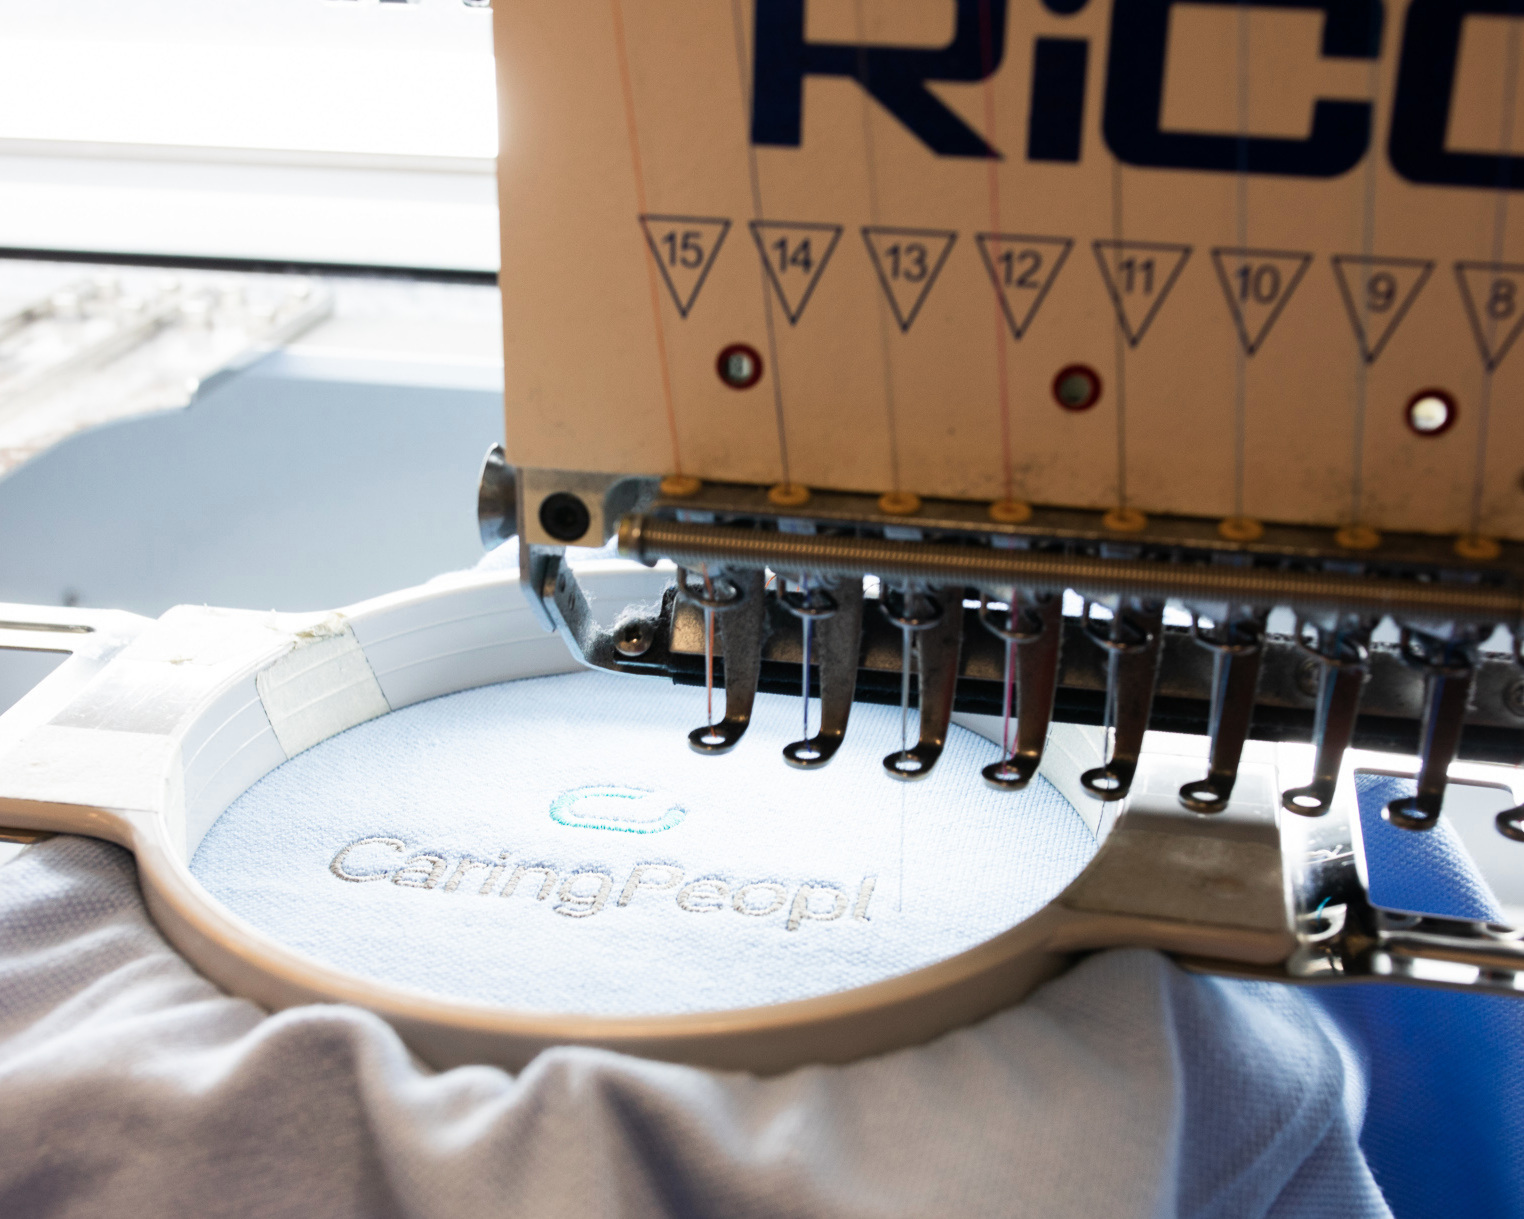 EMBROIDERY SERVICES - Create a classy, upscale look! With a wide range of high-quality custom embroidery solutions, we have just what you need for your marketing strategies, events and staff.